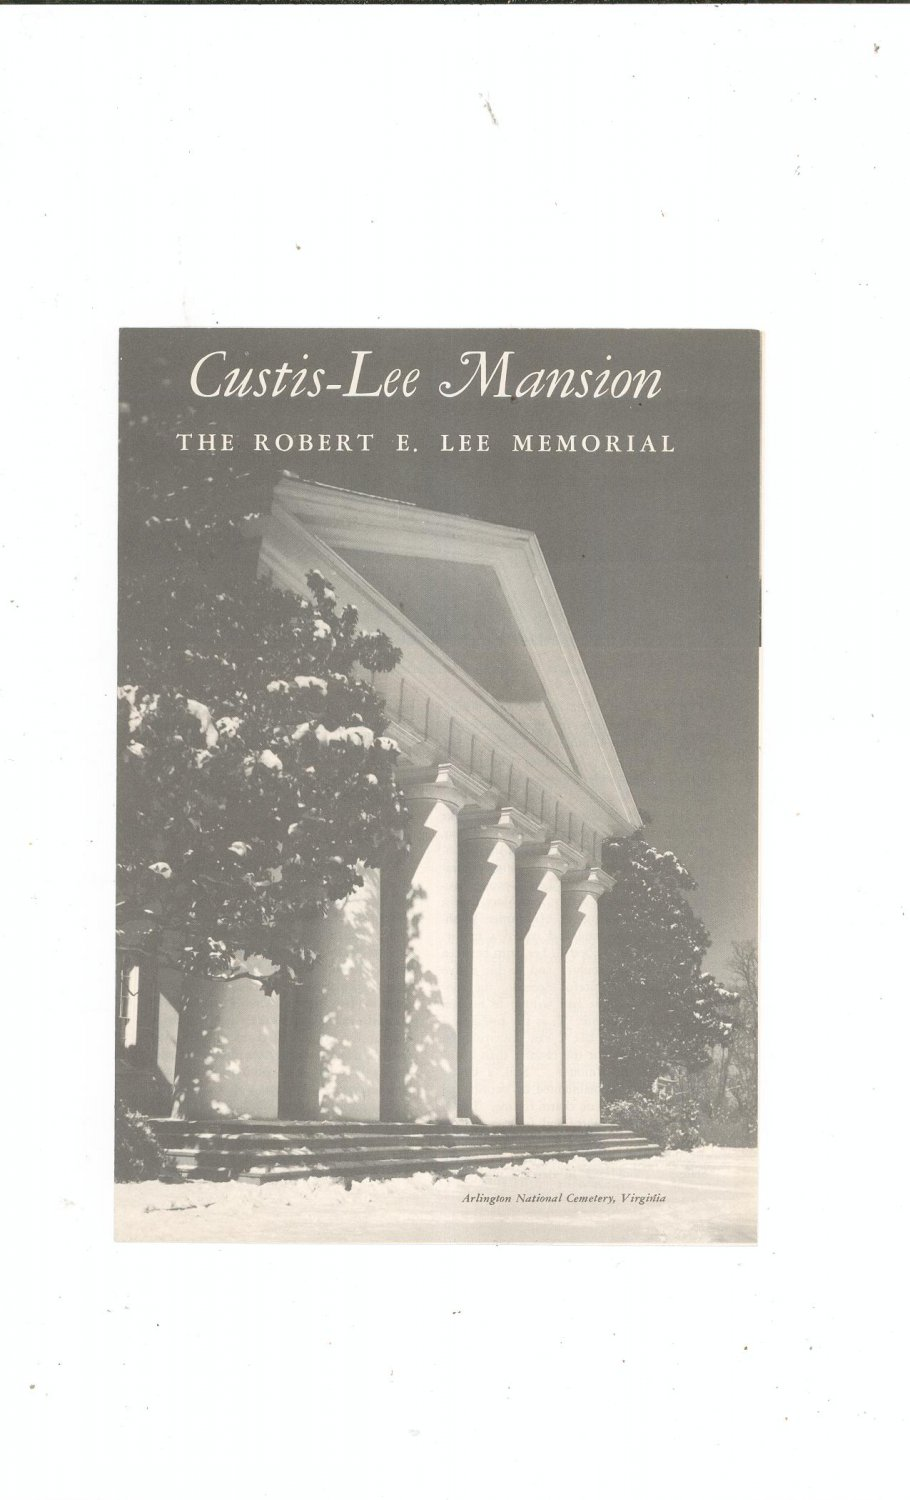 Vintage Custis Lee Mansion Robert E. Lee Memorial Travel Brochure 1962